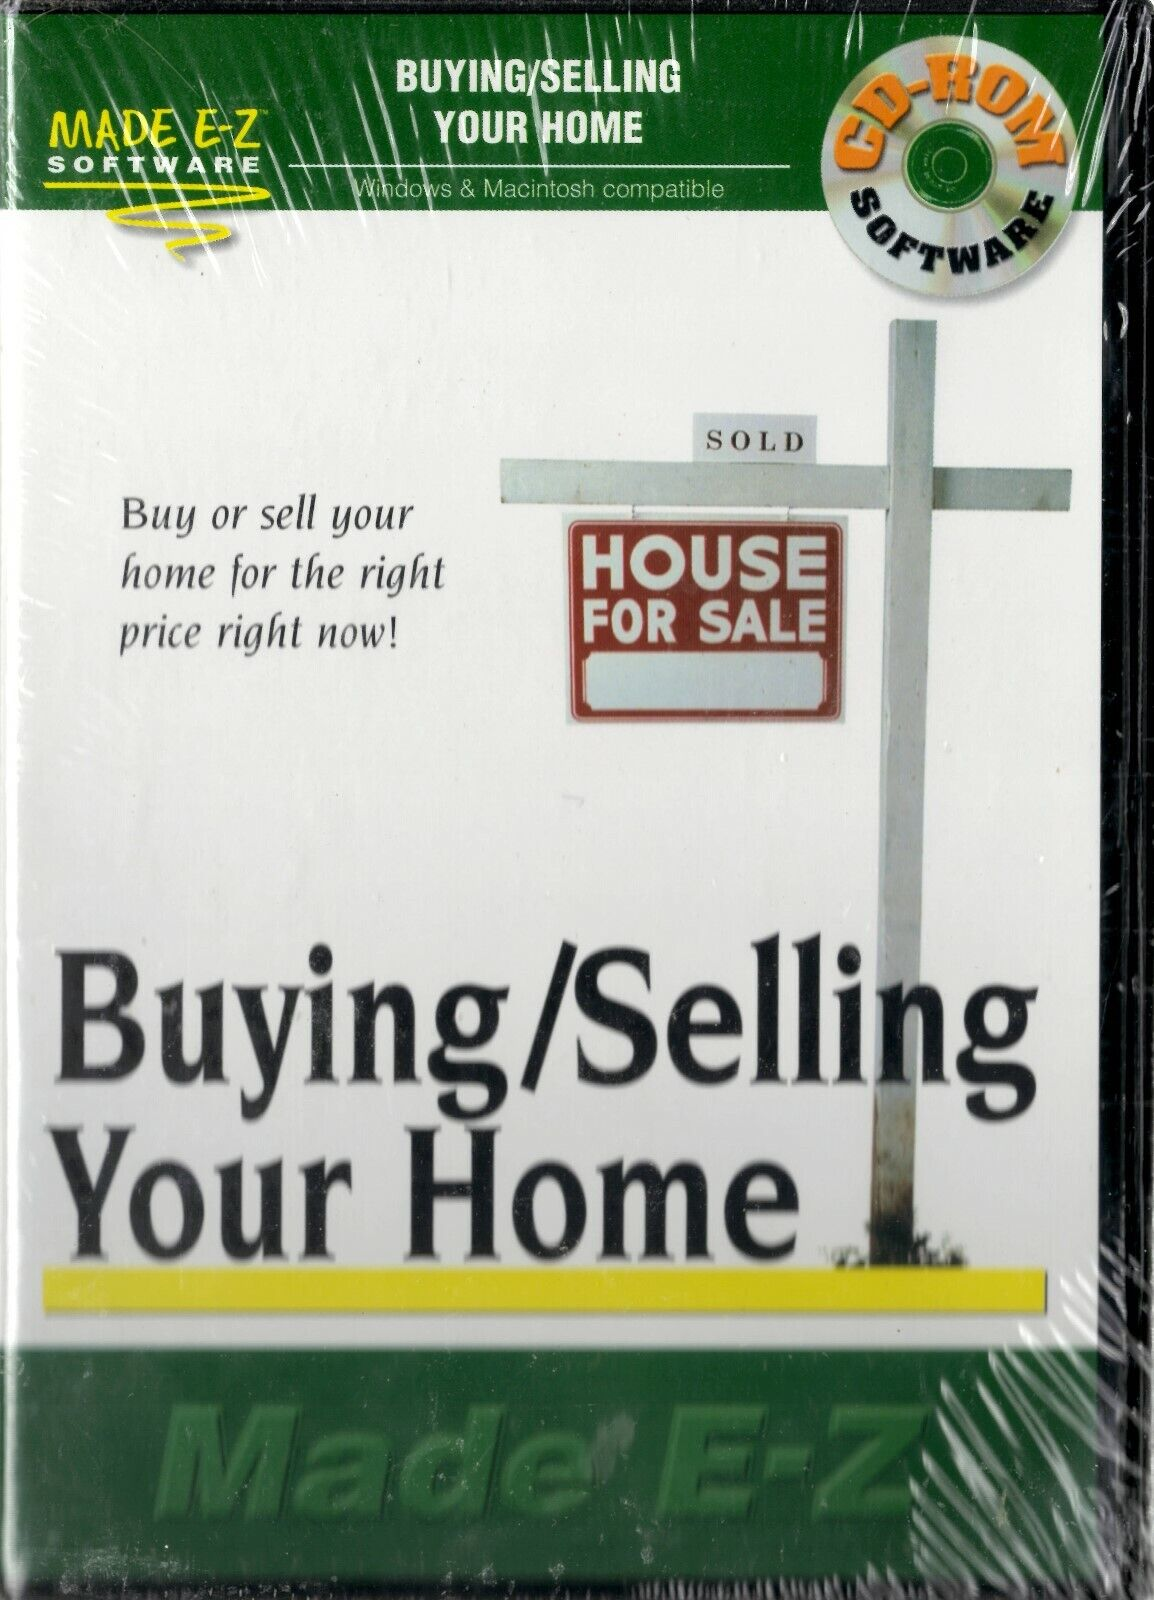 Made E-Z Software - Buying / Selling Your Home - CD-ROM 2001